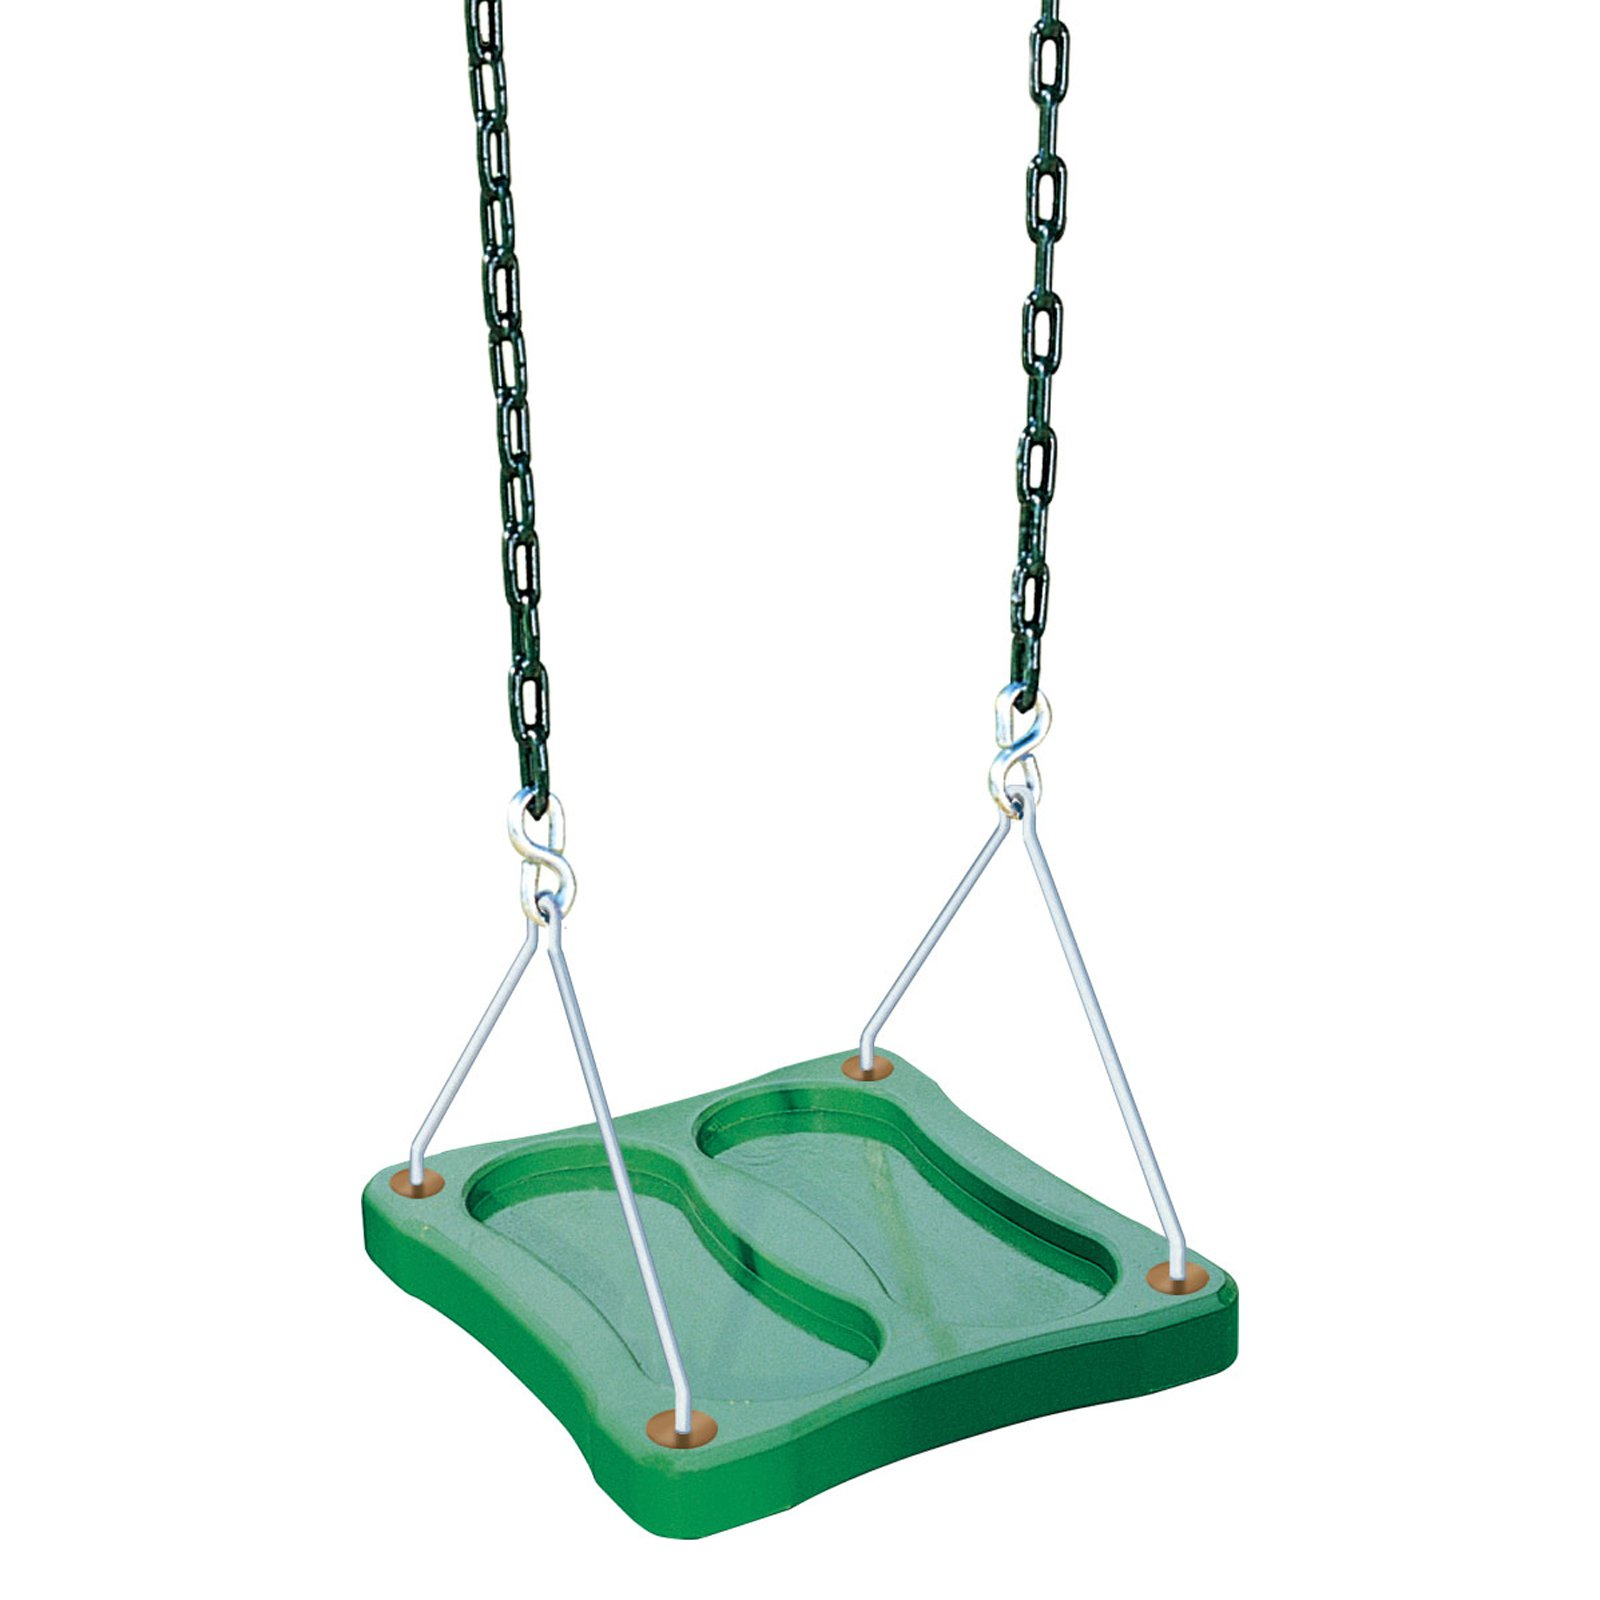 Playtime Swing Sets Stand-N-Swing - Green